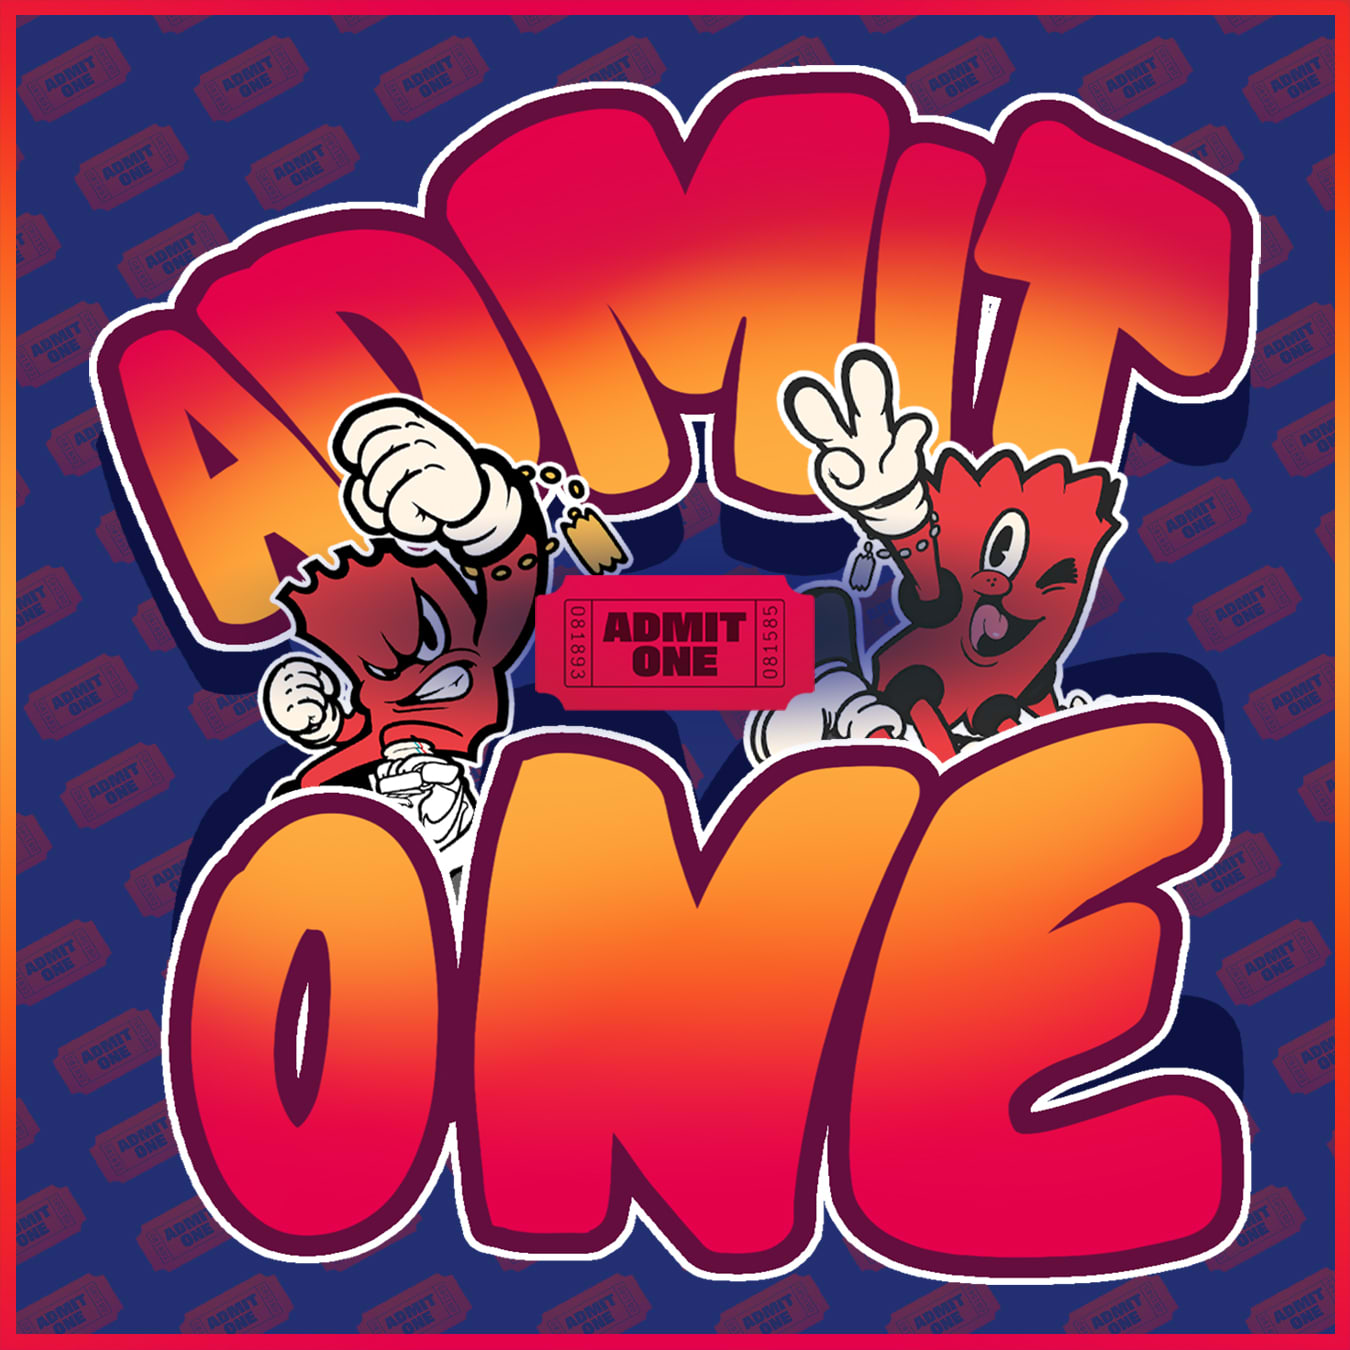 Admit One, Game animation